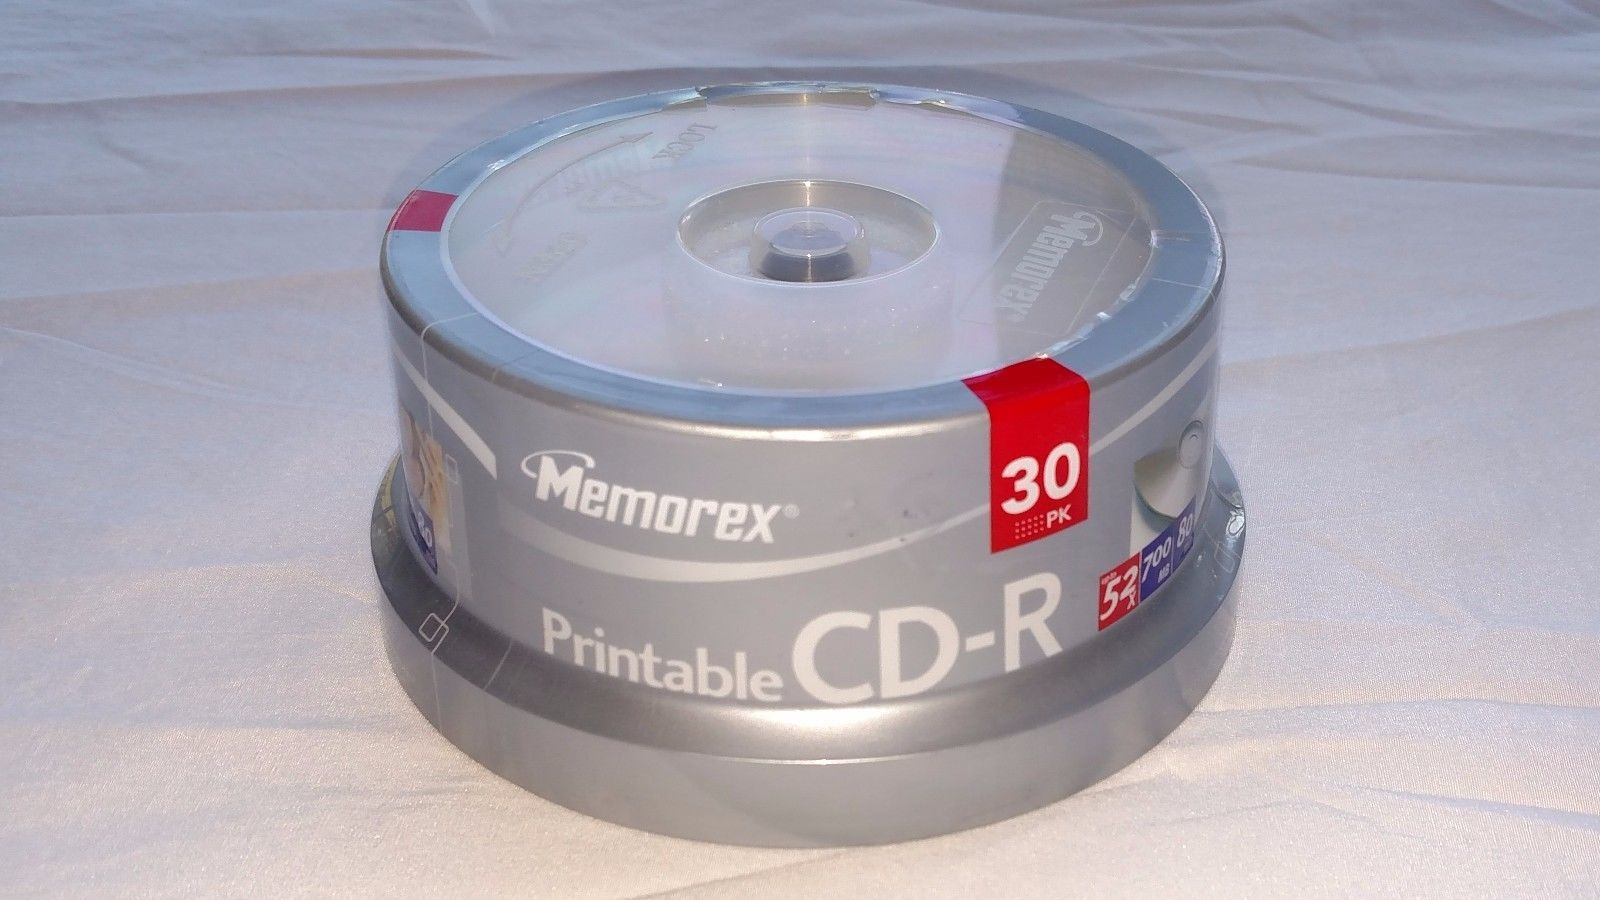 photo relating to Printable Cds titled Fresh Memorex 52X Printable 700MB CD-R and 29 identical products and solutions